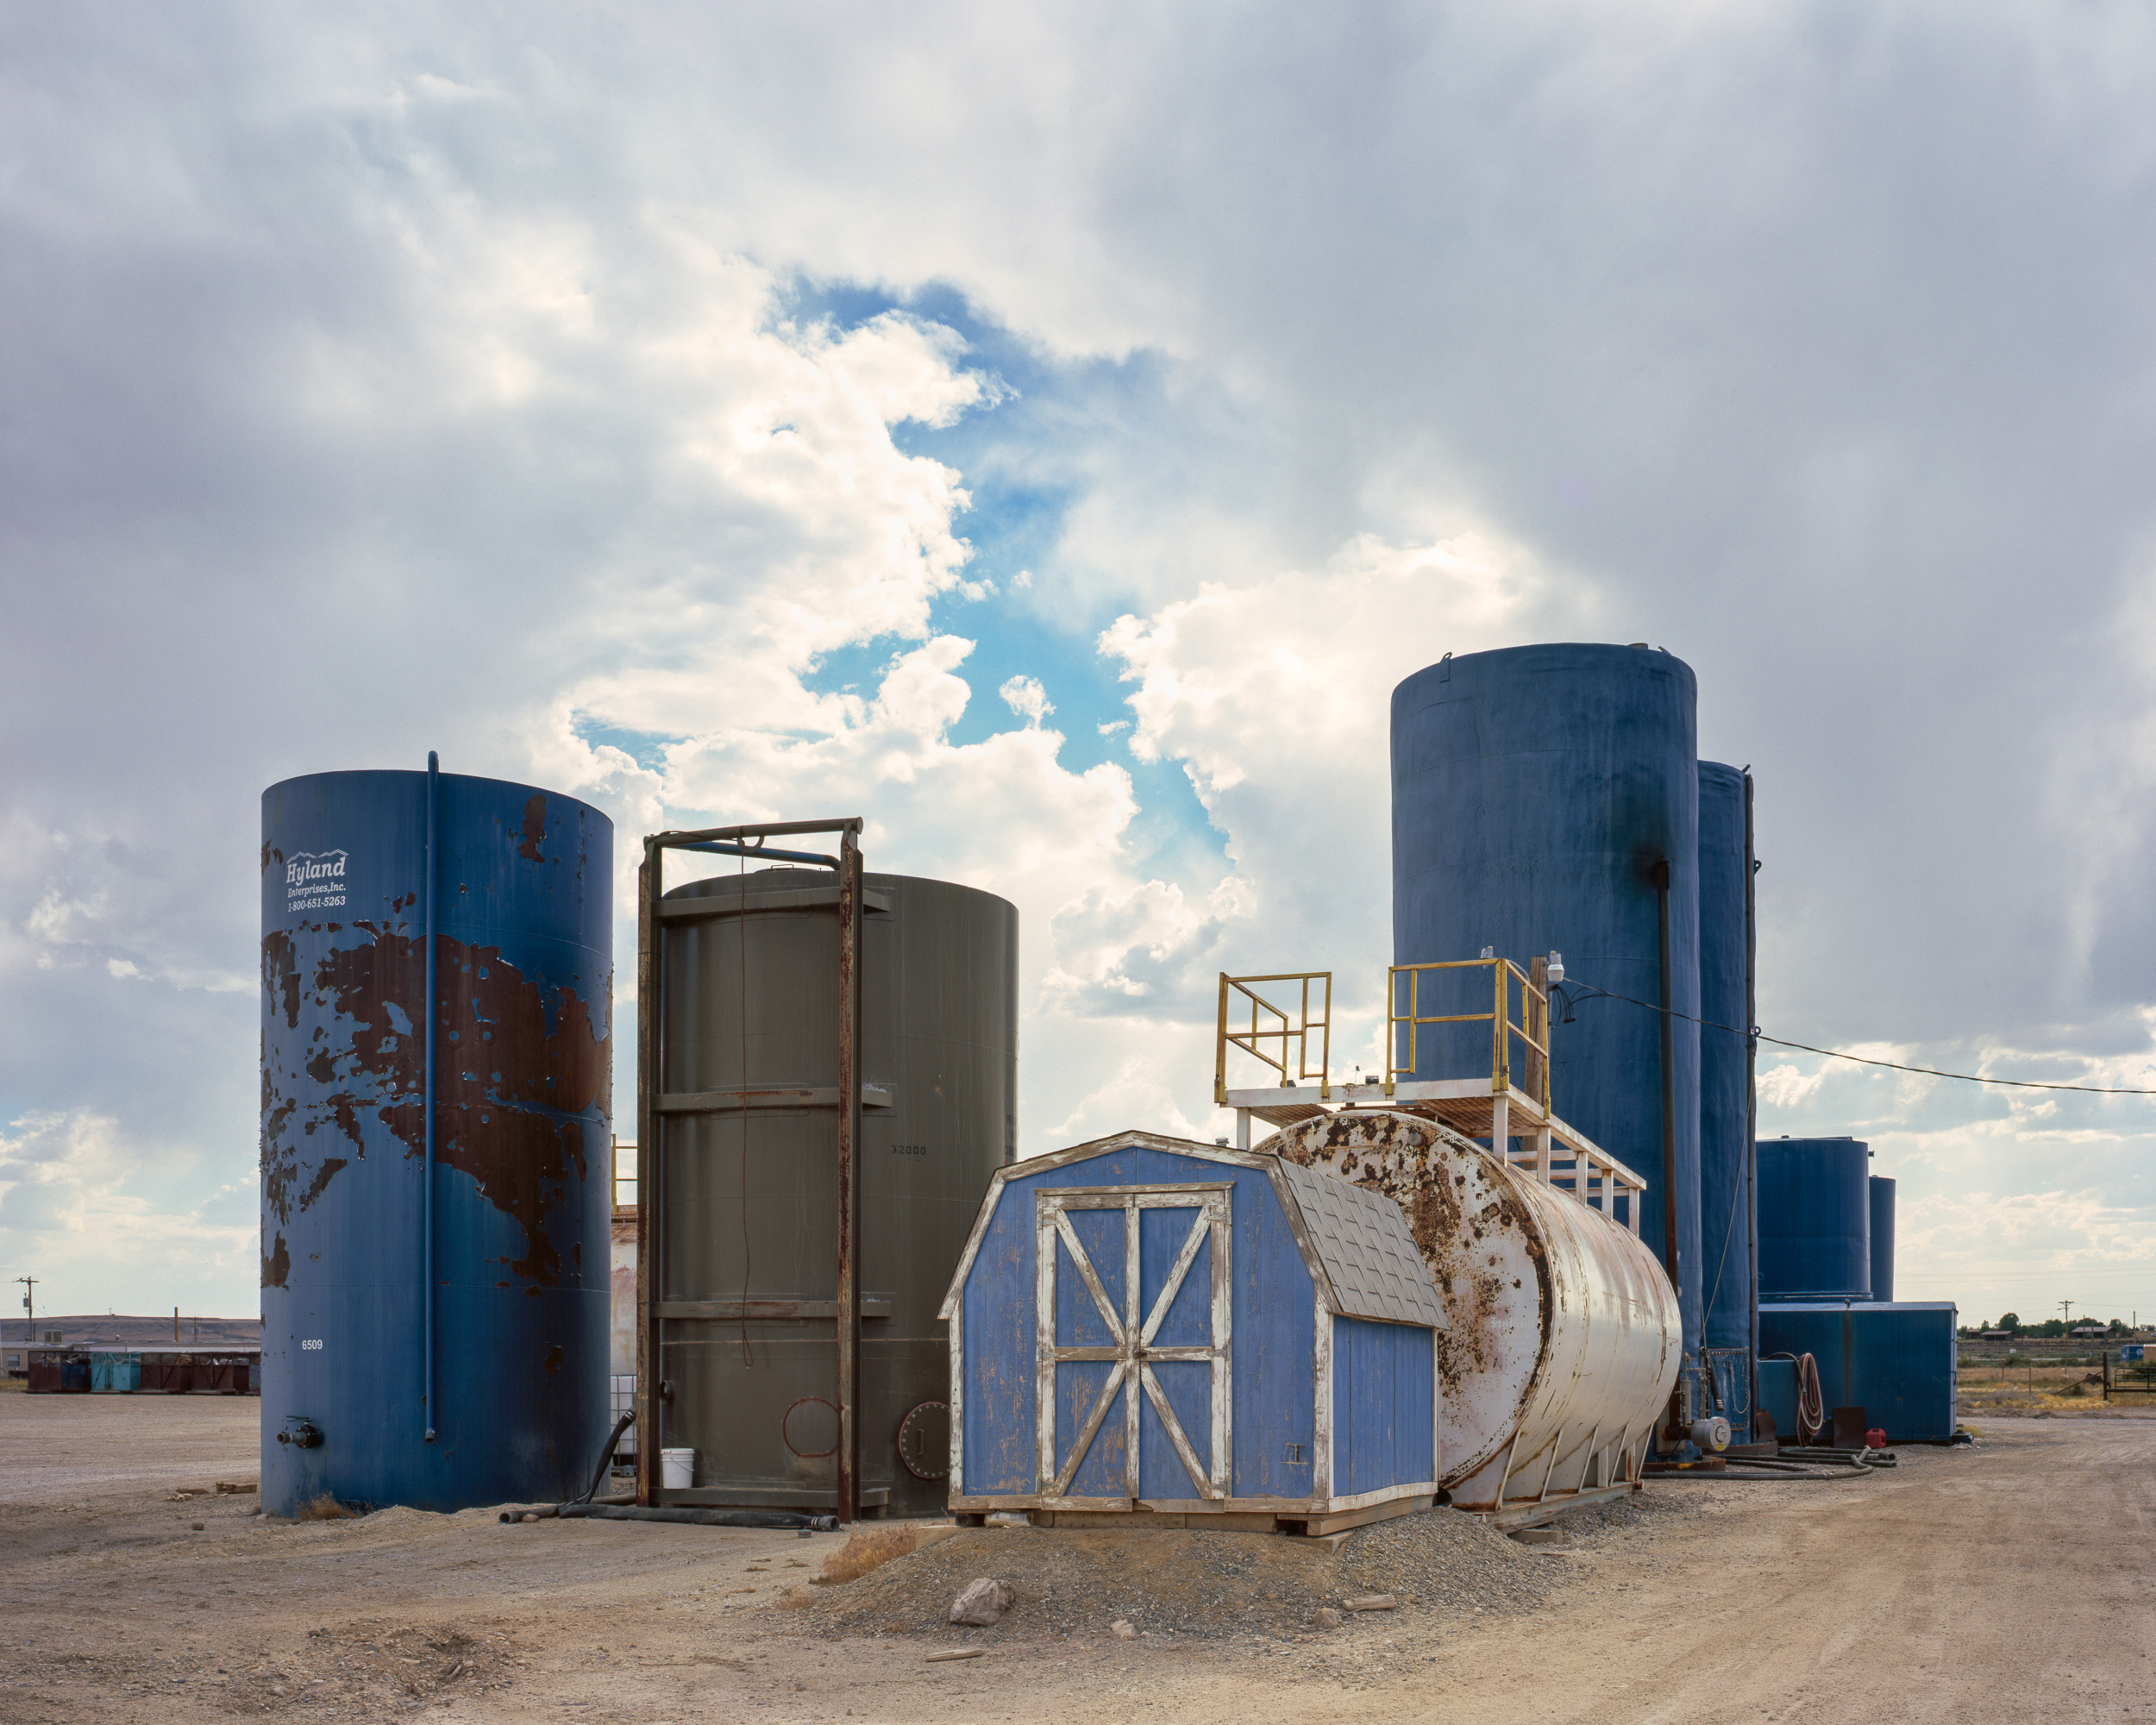 Water Tanks, Wamsutter, Wyoming